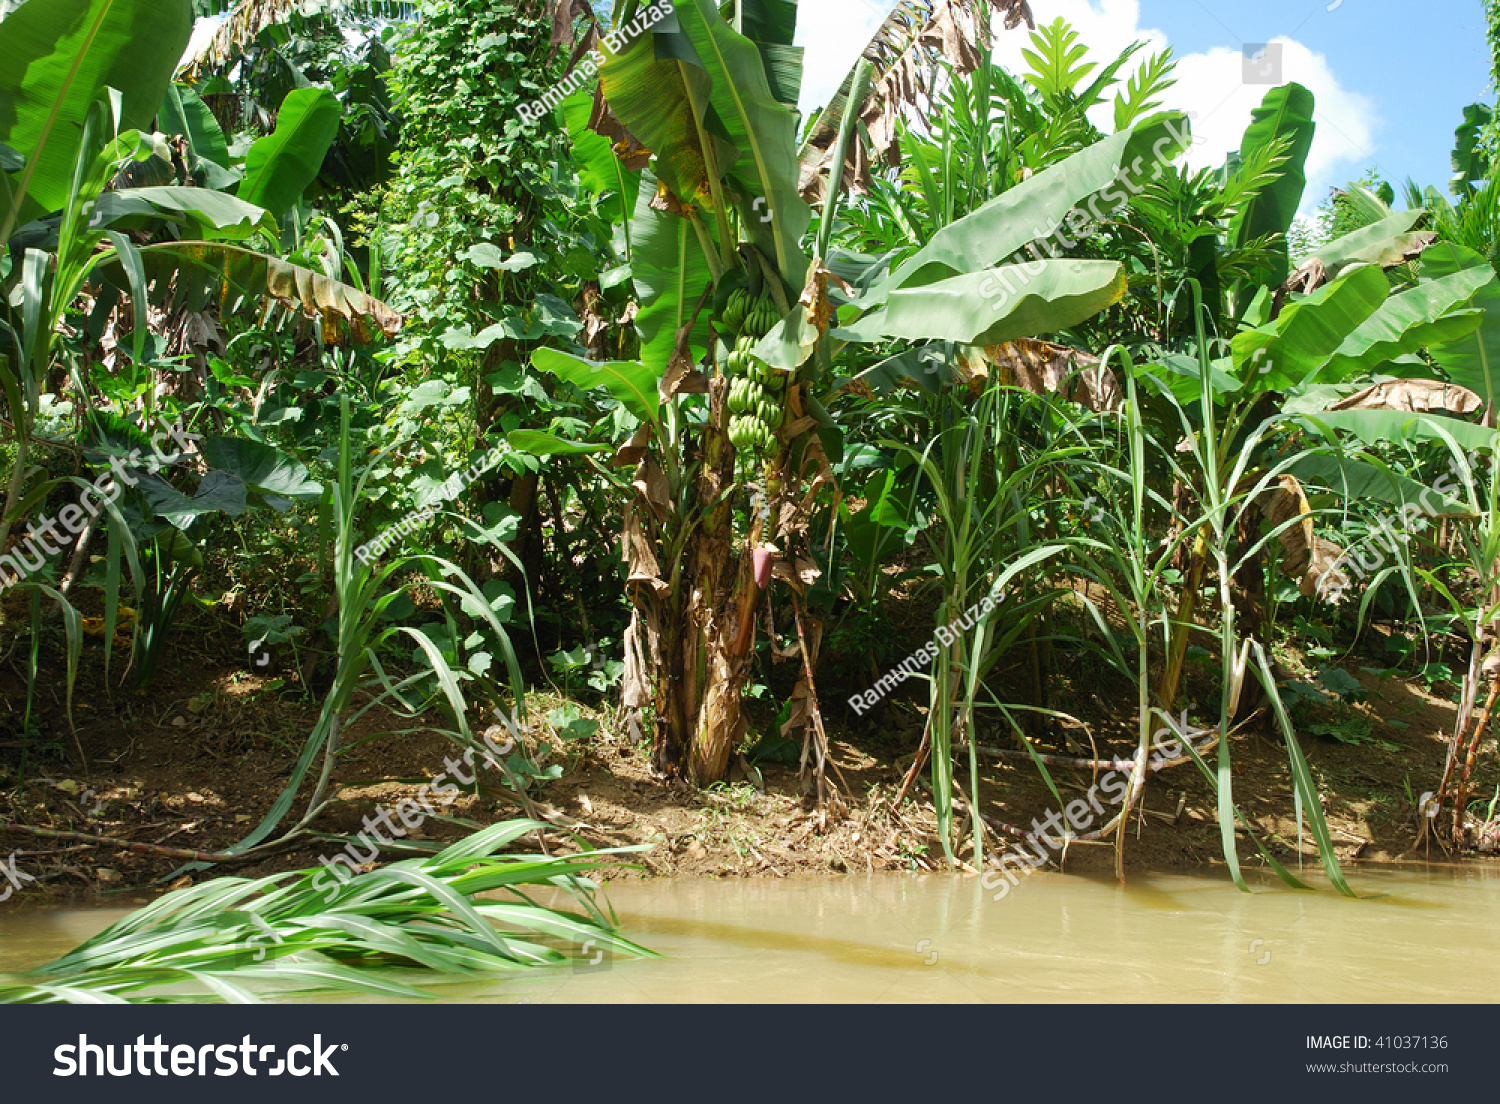 This Shot Depicts A Tropical Rainforest Greenery With Trees And ...